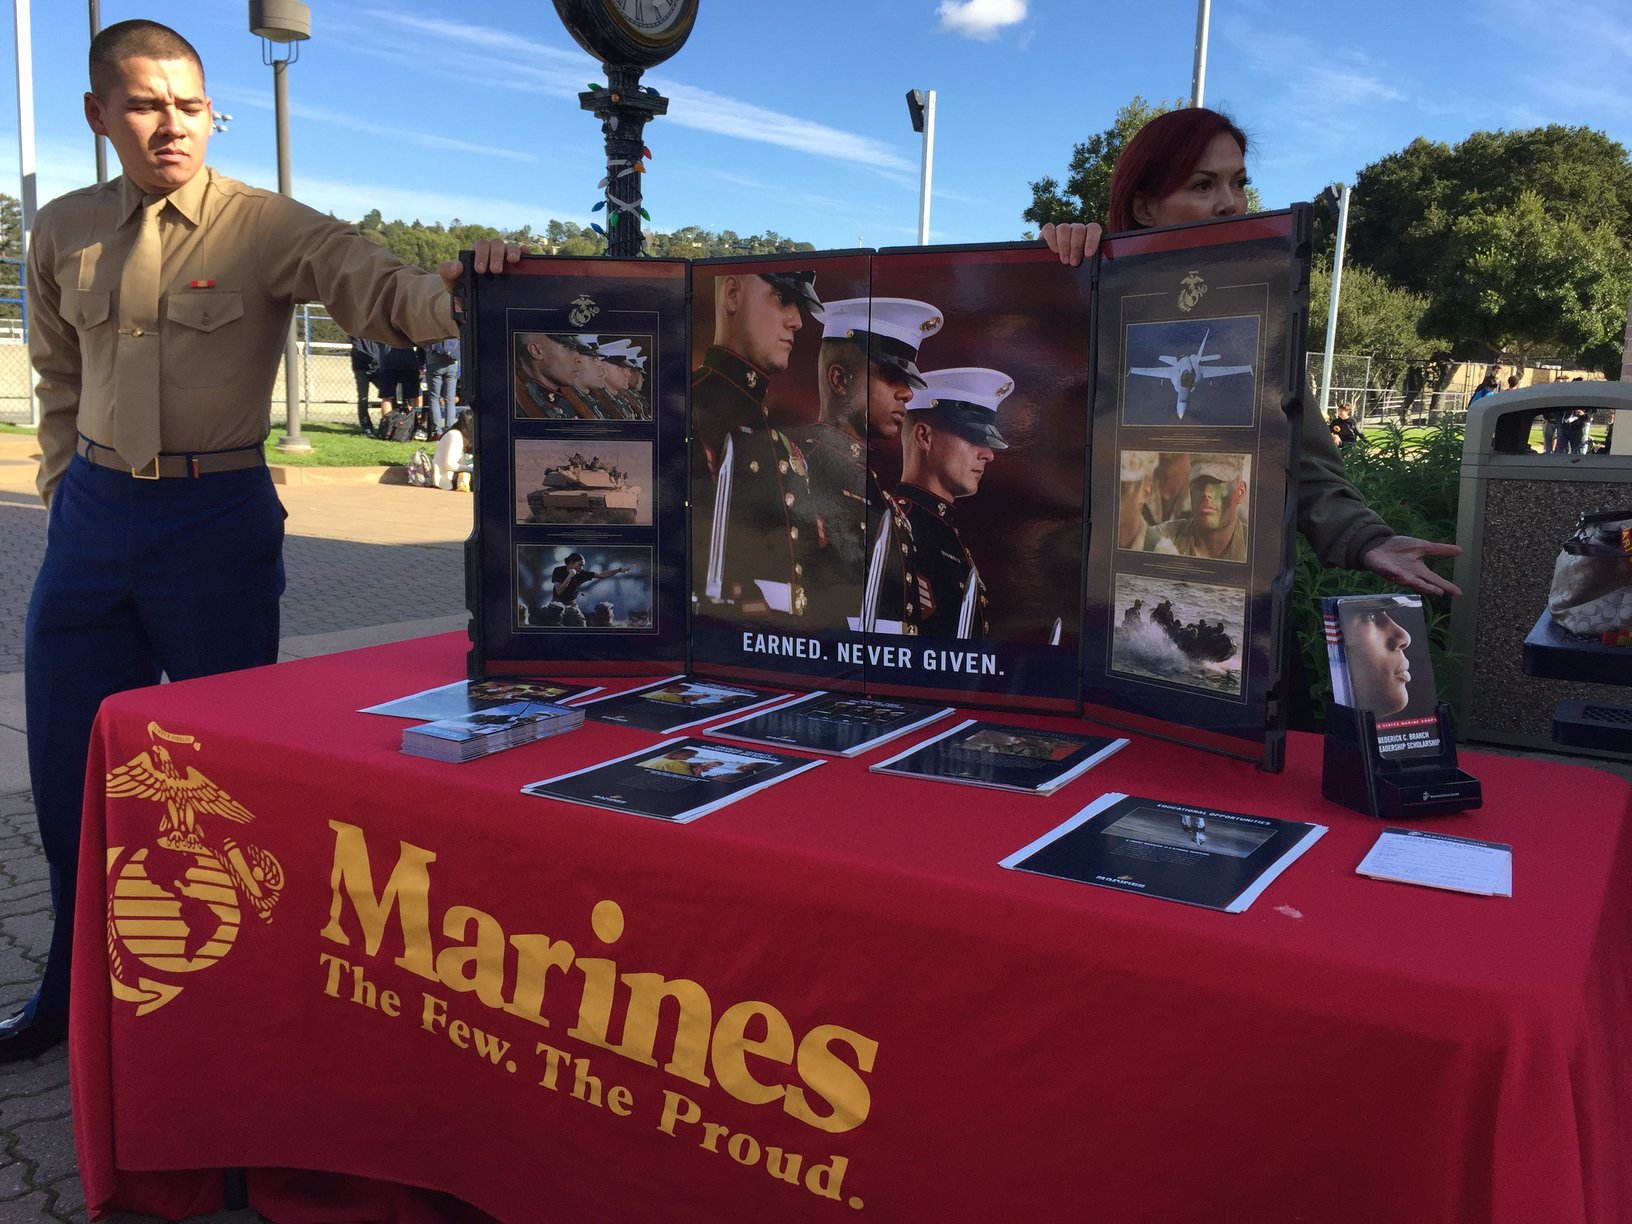 Private Dylan Walsh and Staff Sergeant Stella Weishaar, both Marine Corps recruiters, visited the school campus to explain why students should consider joining the Marine Corps.